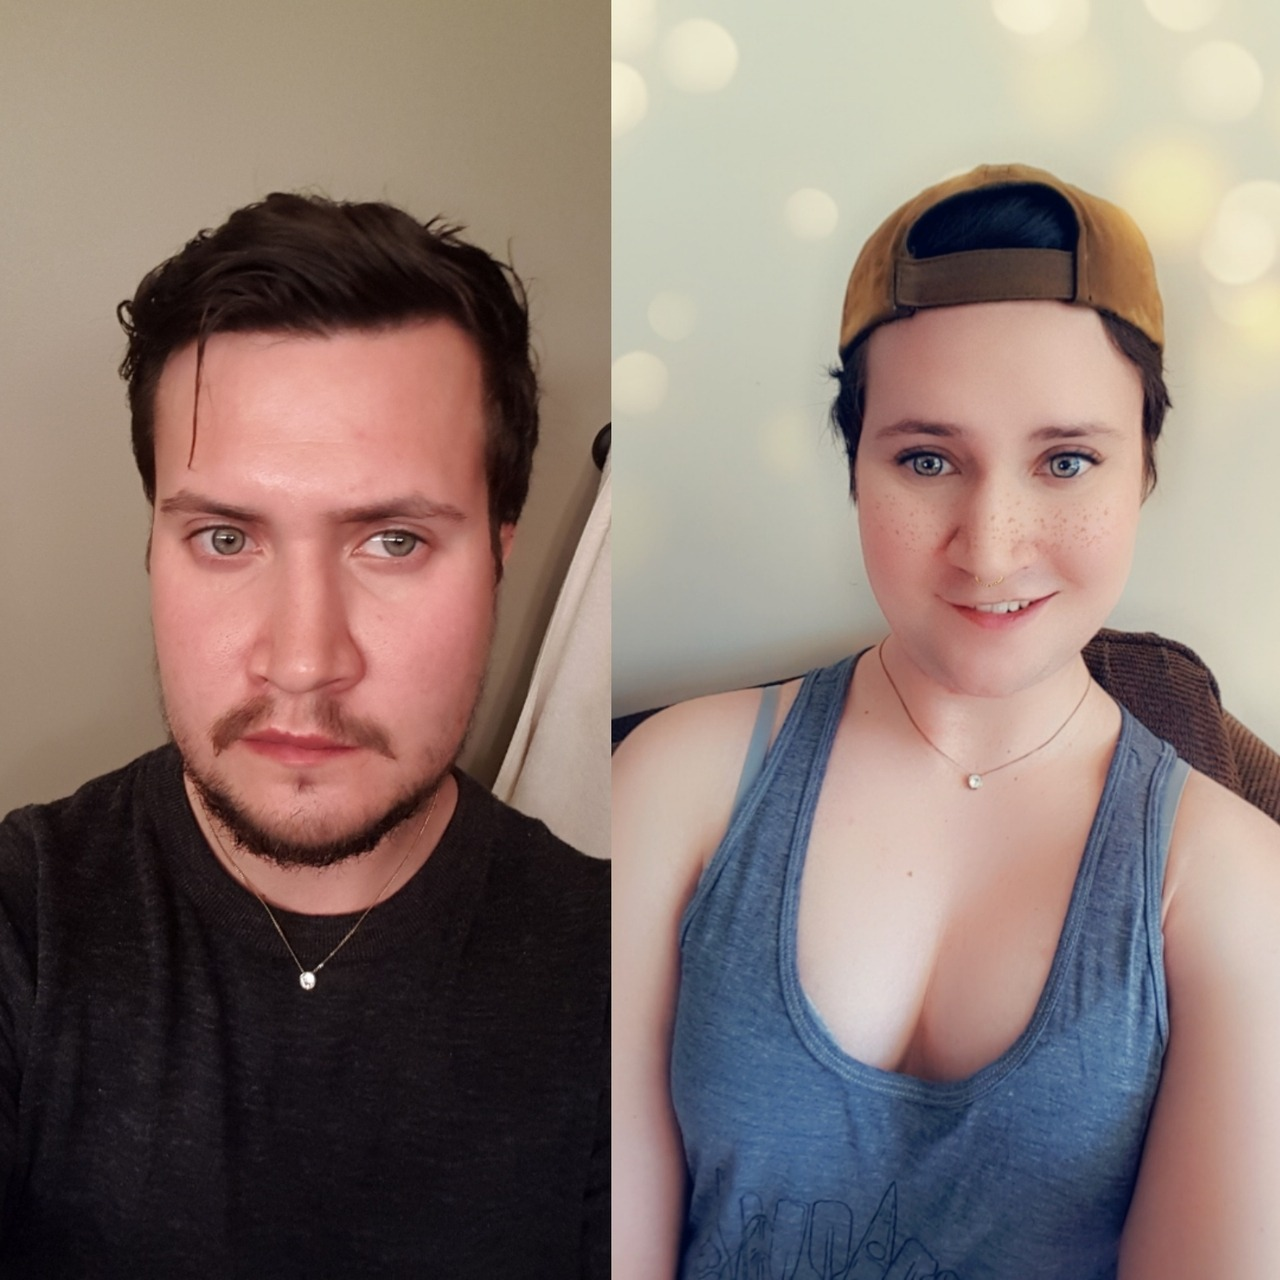 mtf before and after